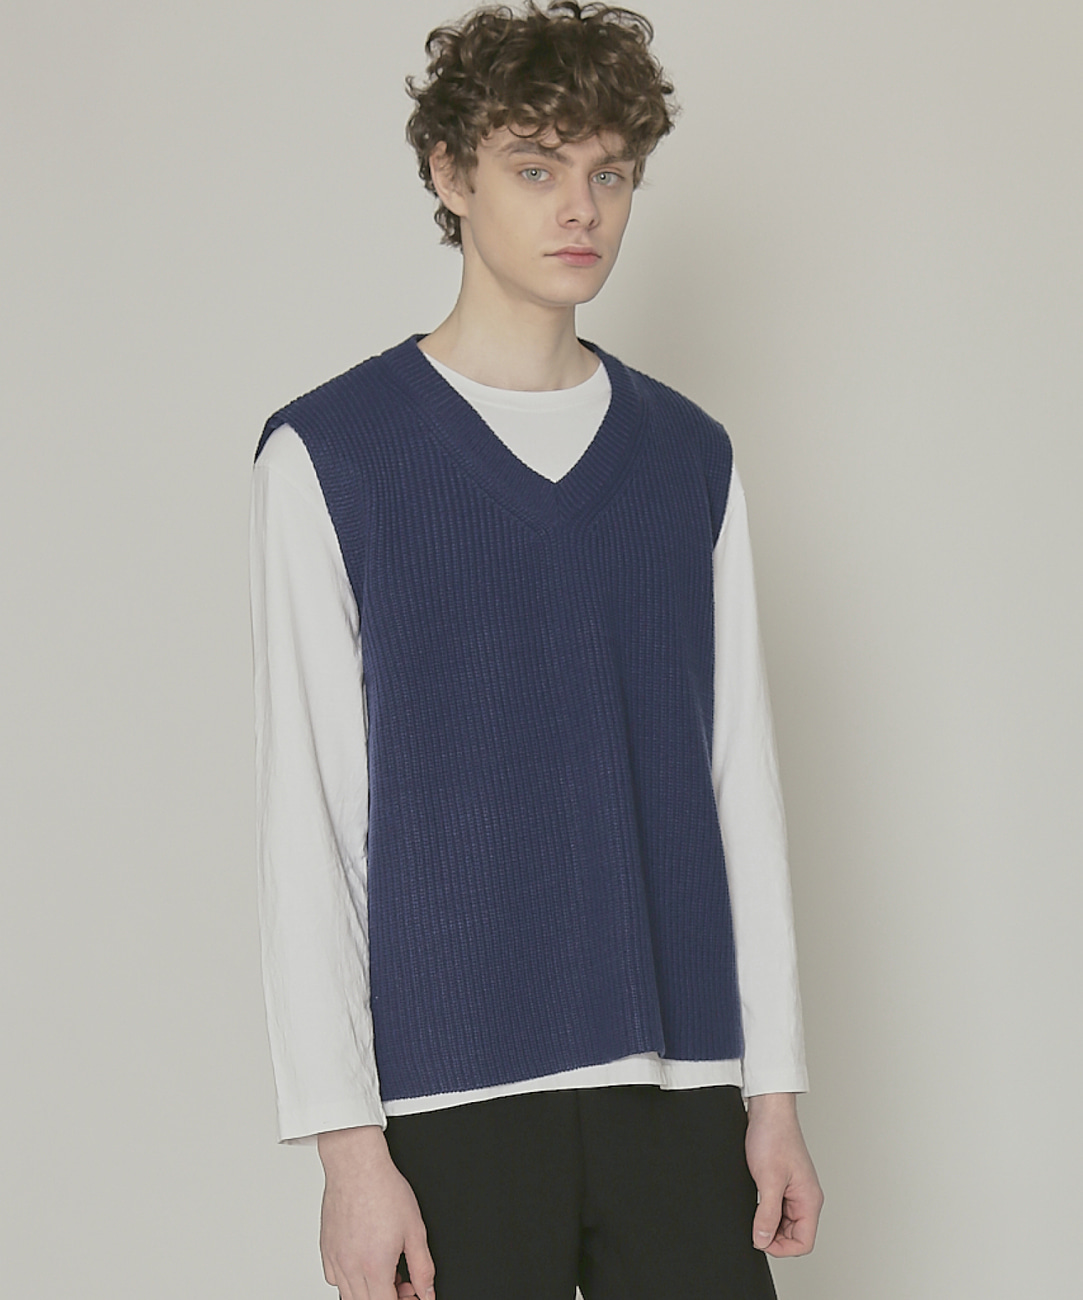 DWS V-NECK KNIT VEST(BLUE)